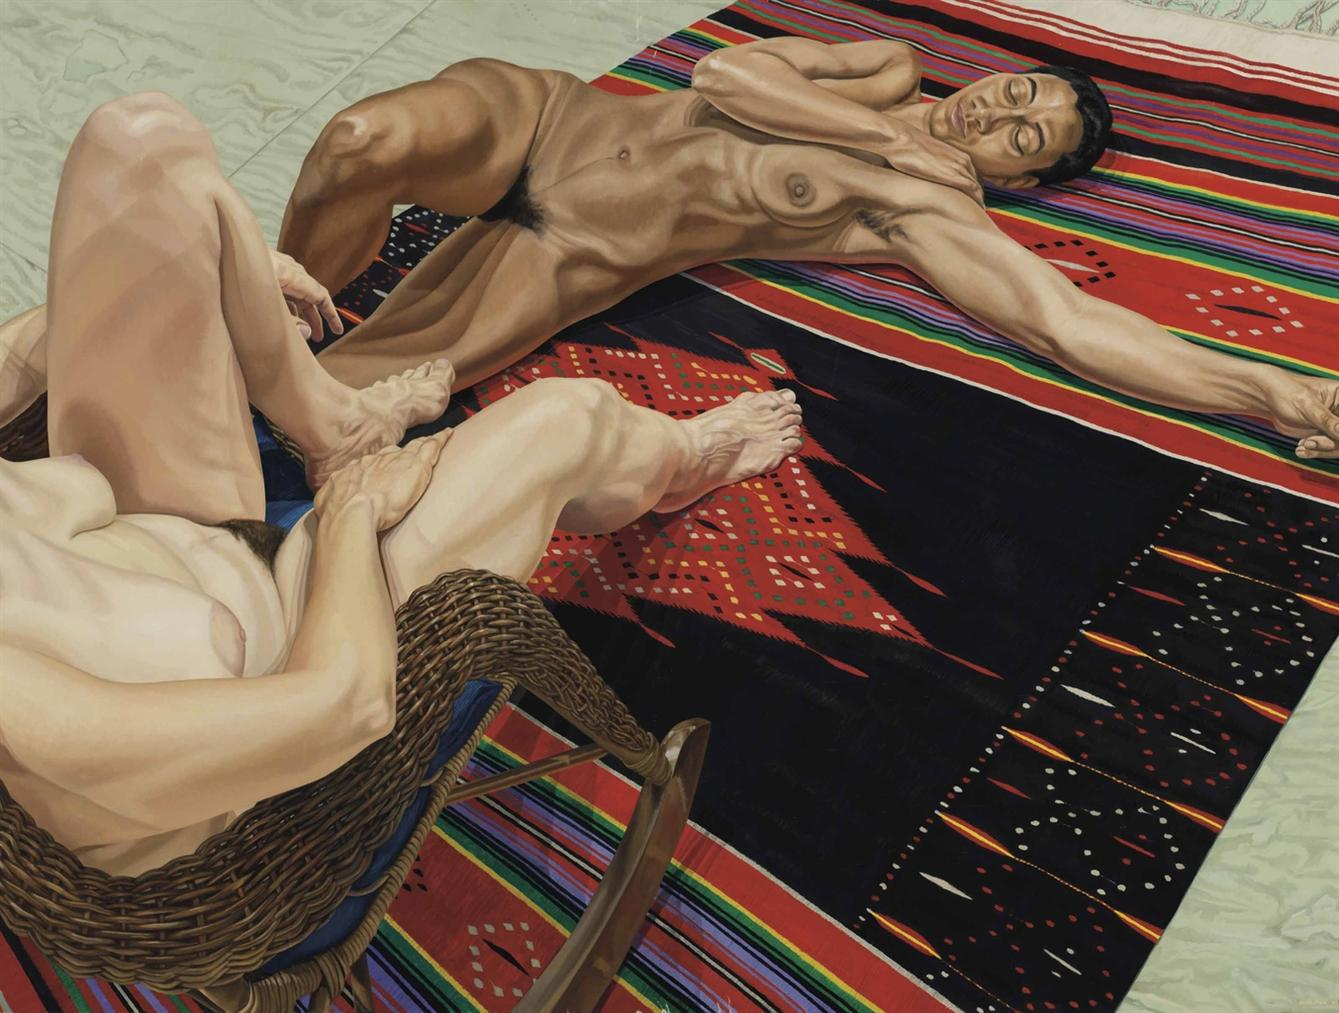 Philip Pearlstein-Two Models With Mexican Rug-1983